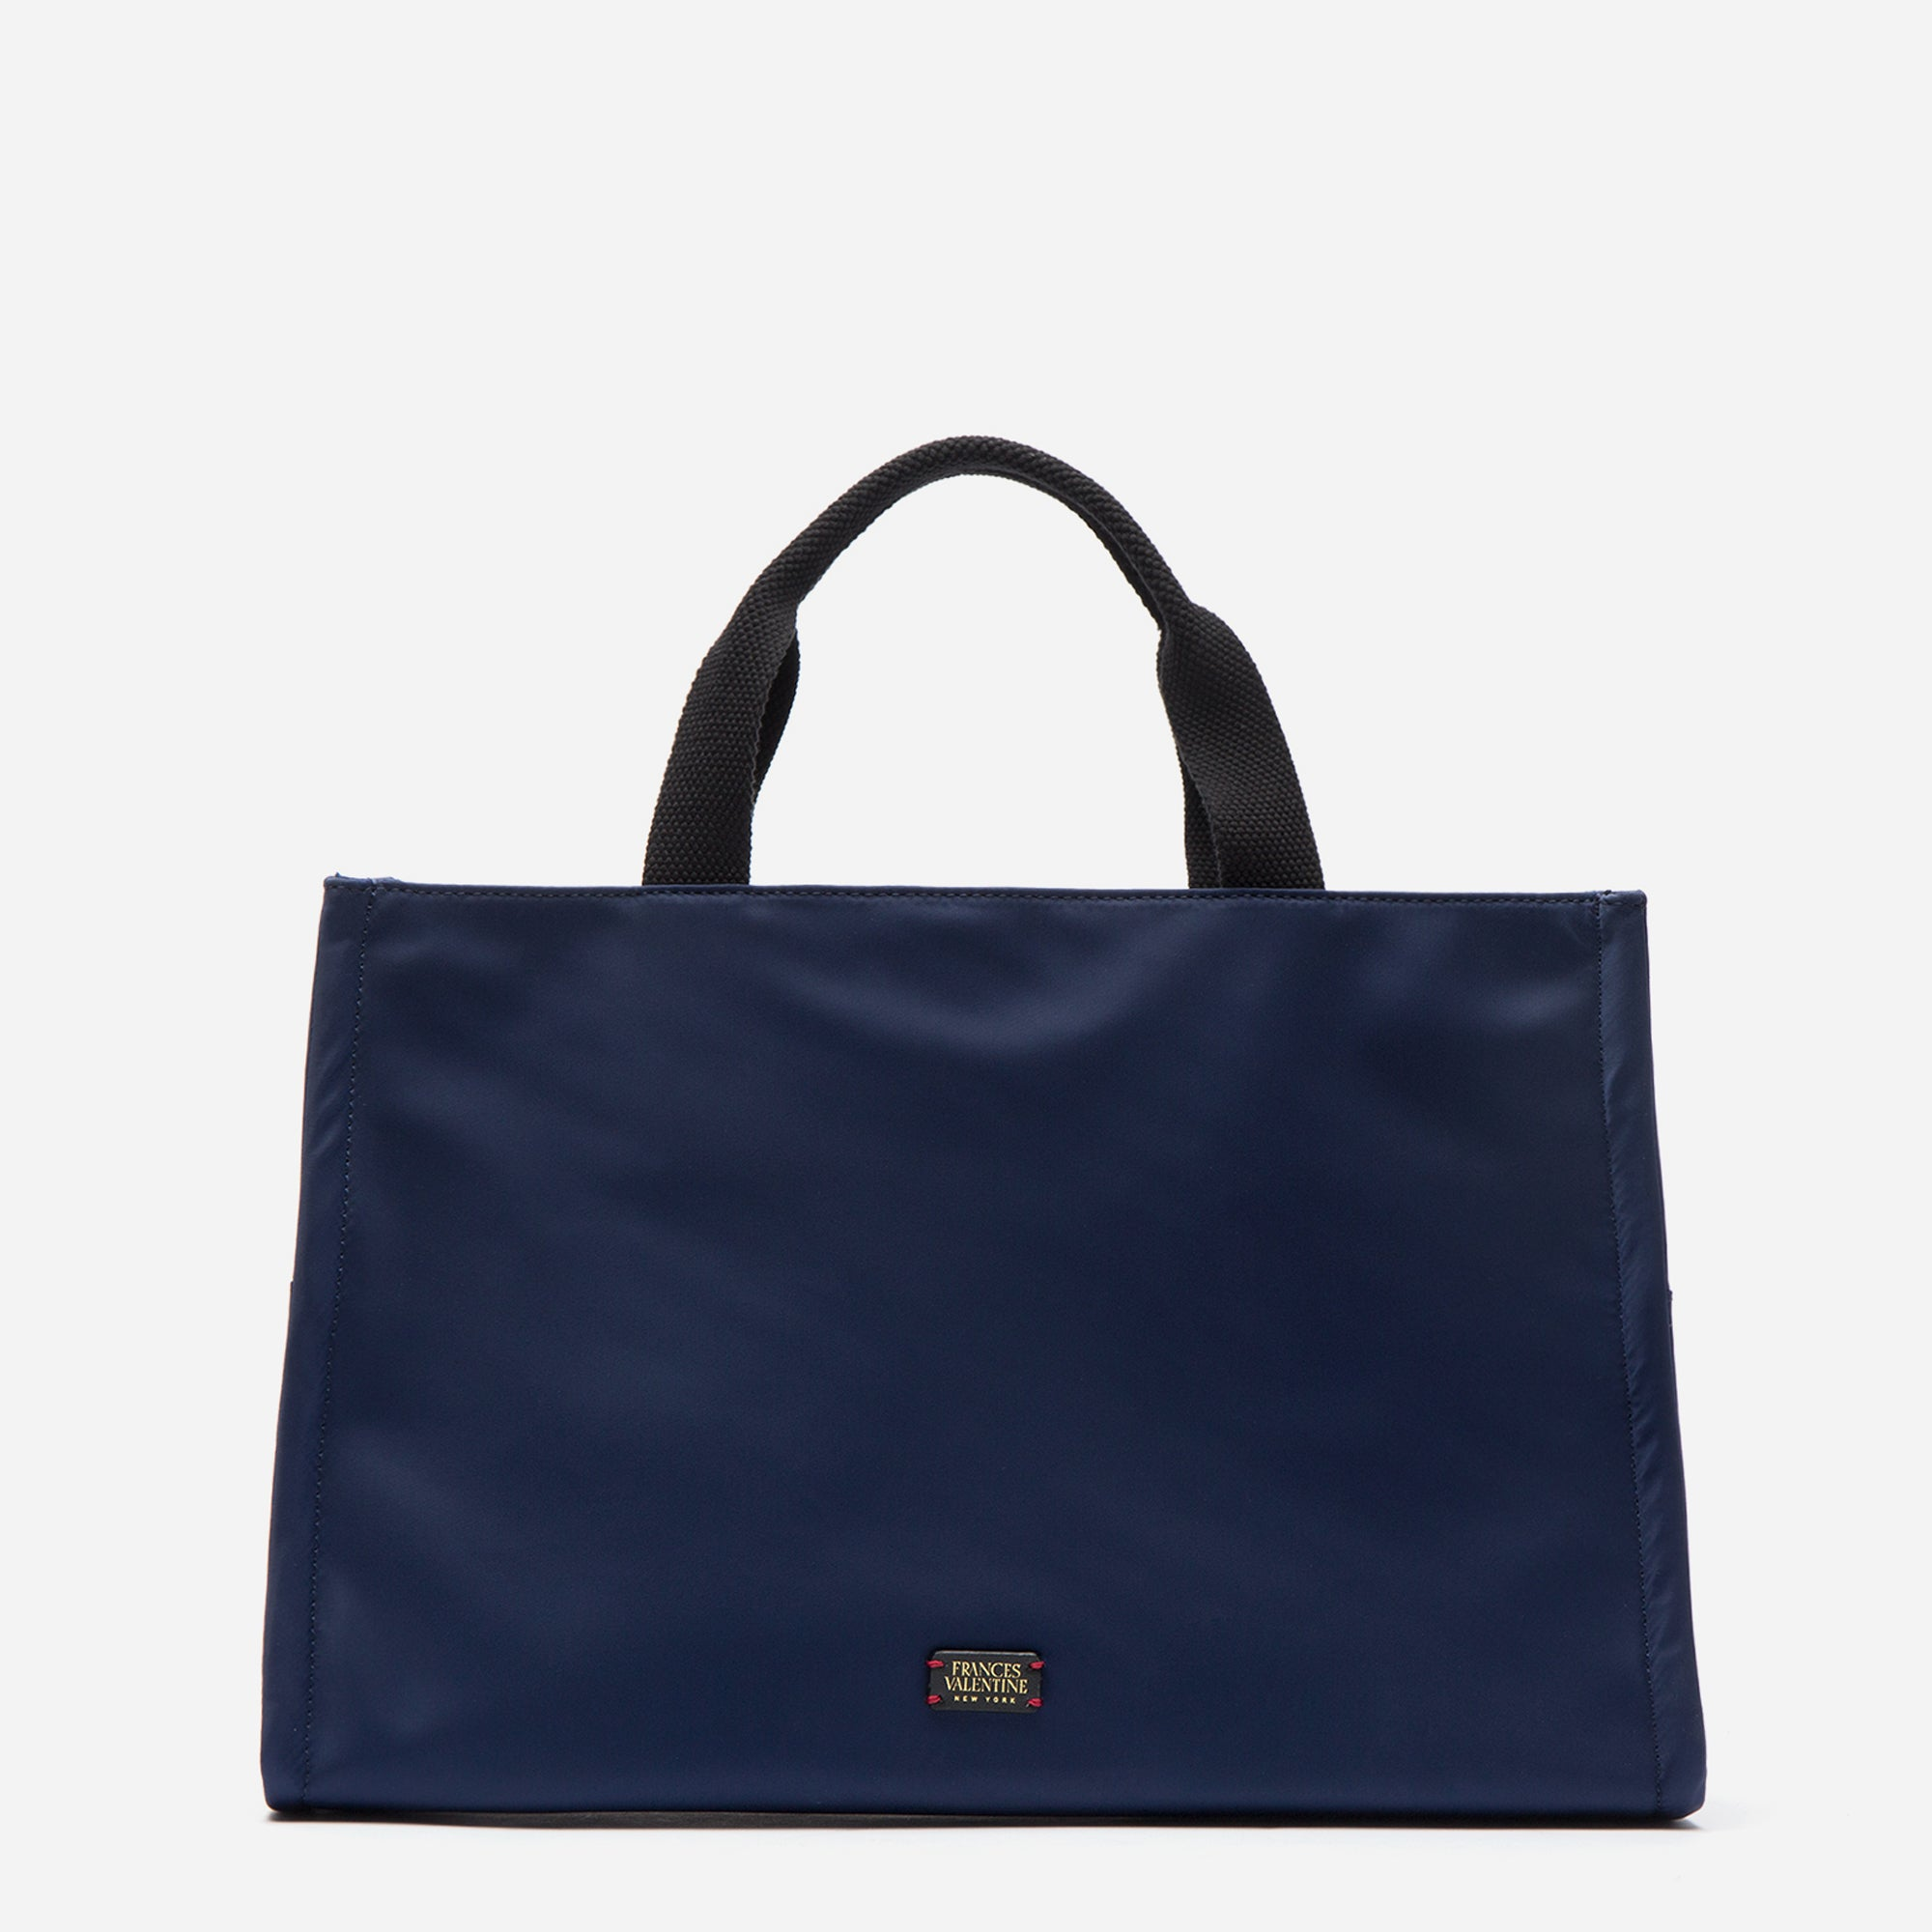 Limited Edition Kate Top Handle Tote Navy